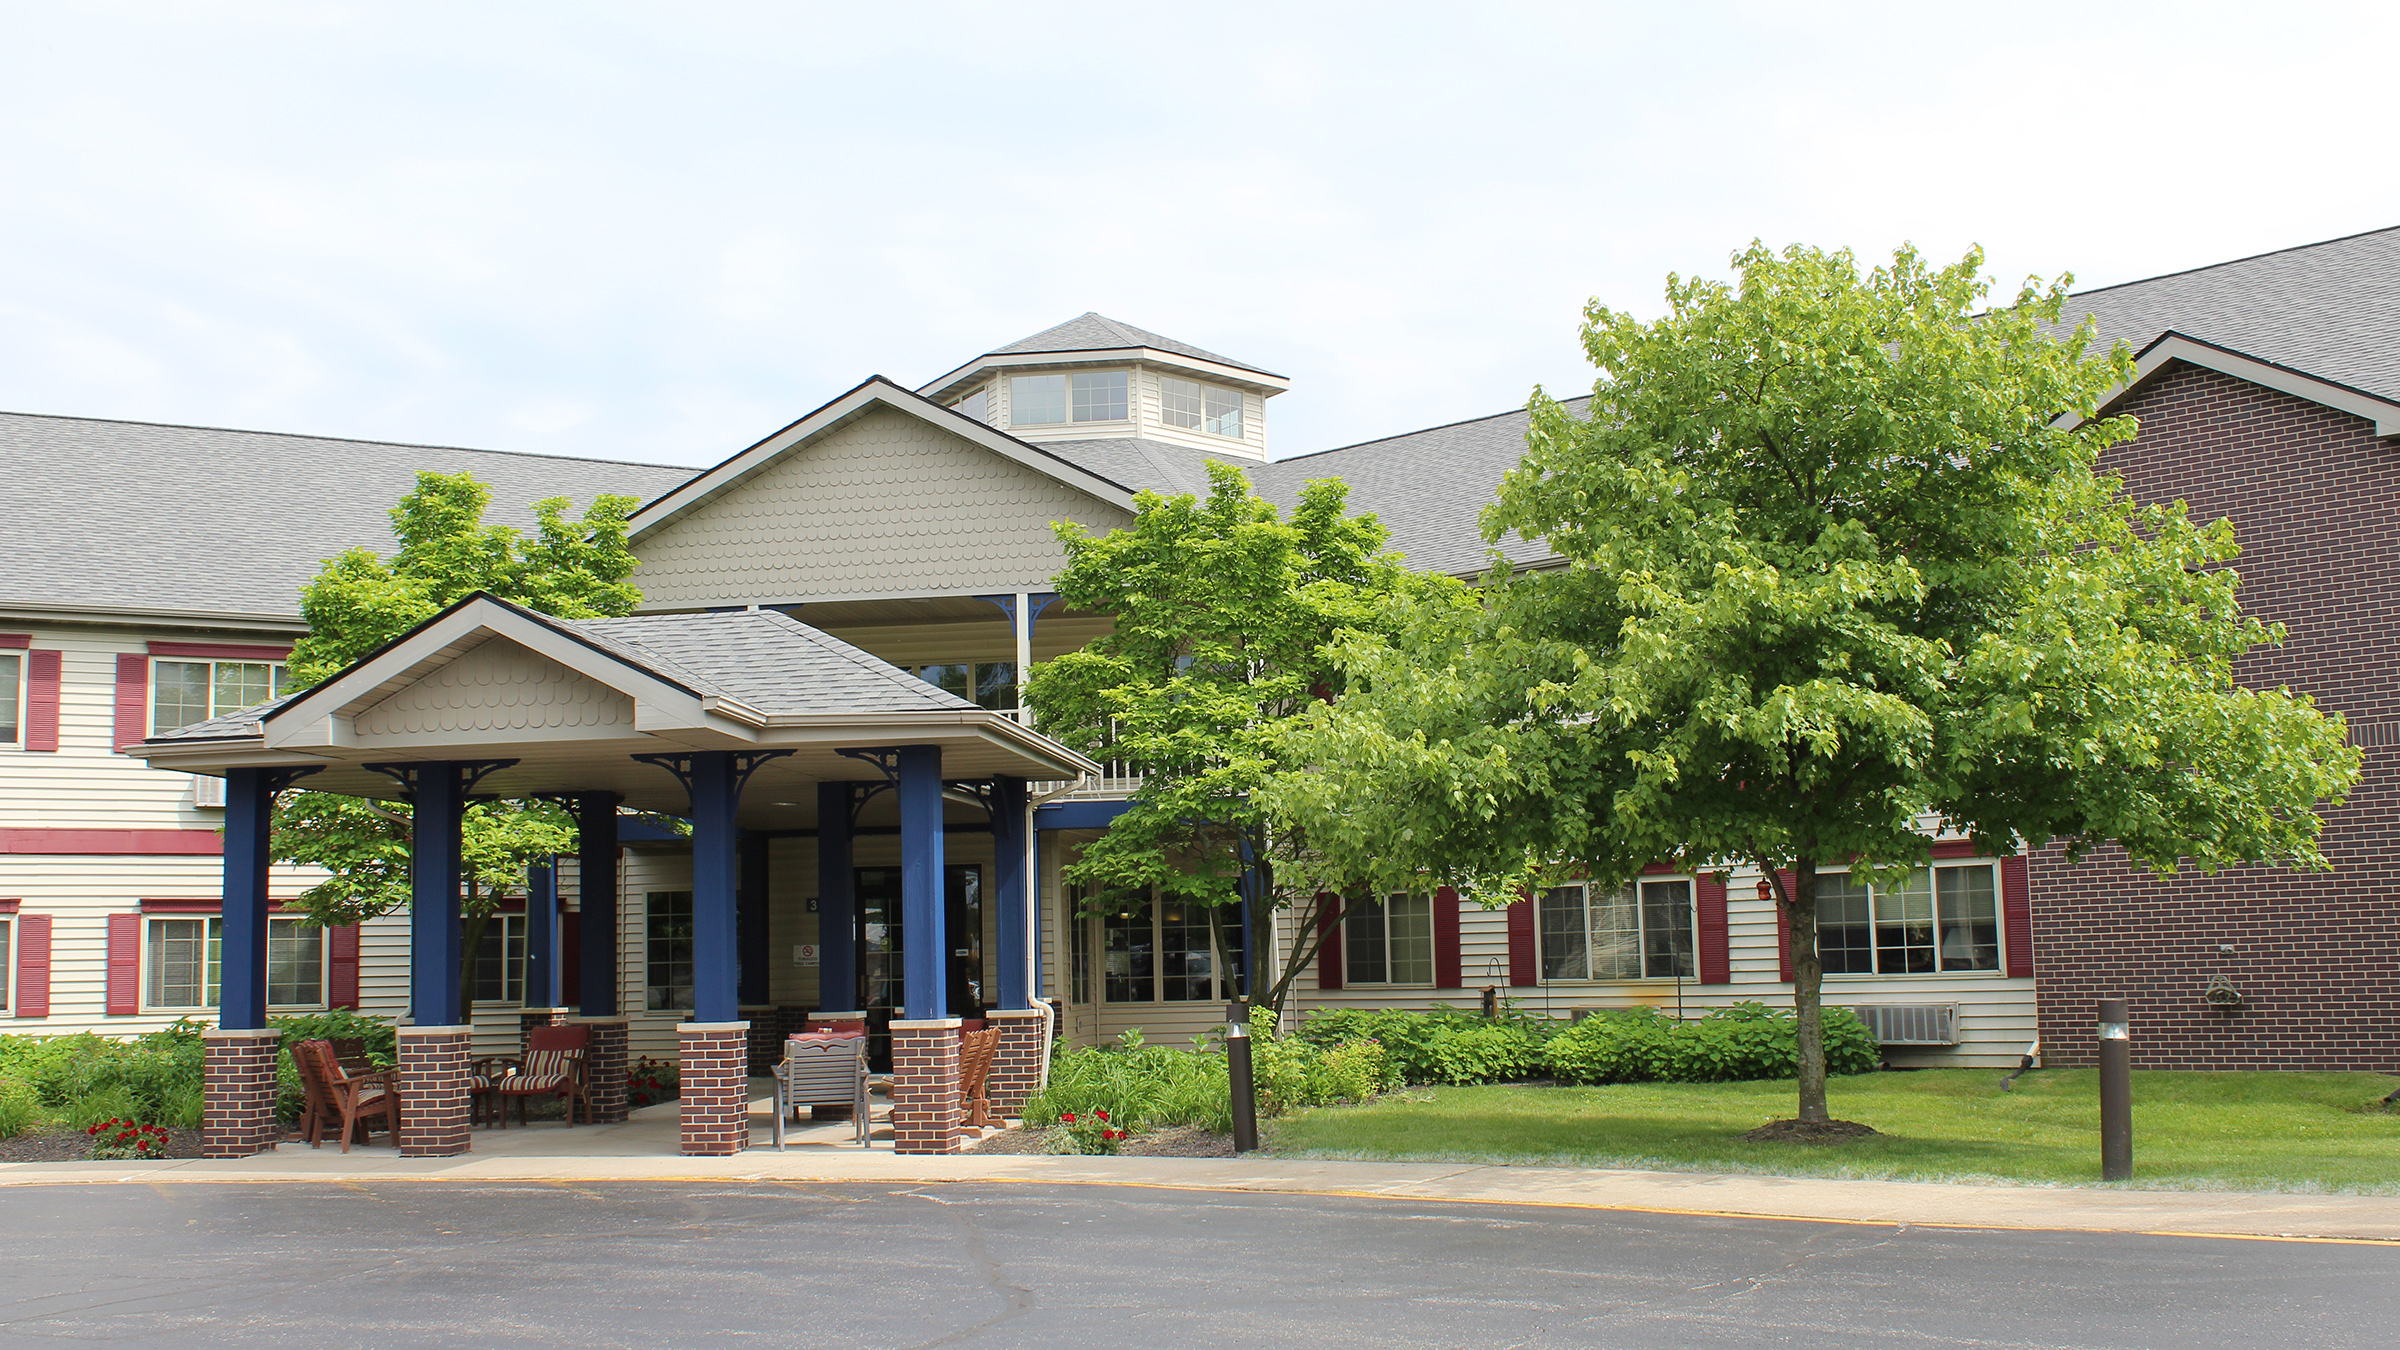 Miller's Senior Living in Portage Indiana